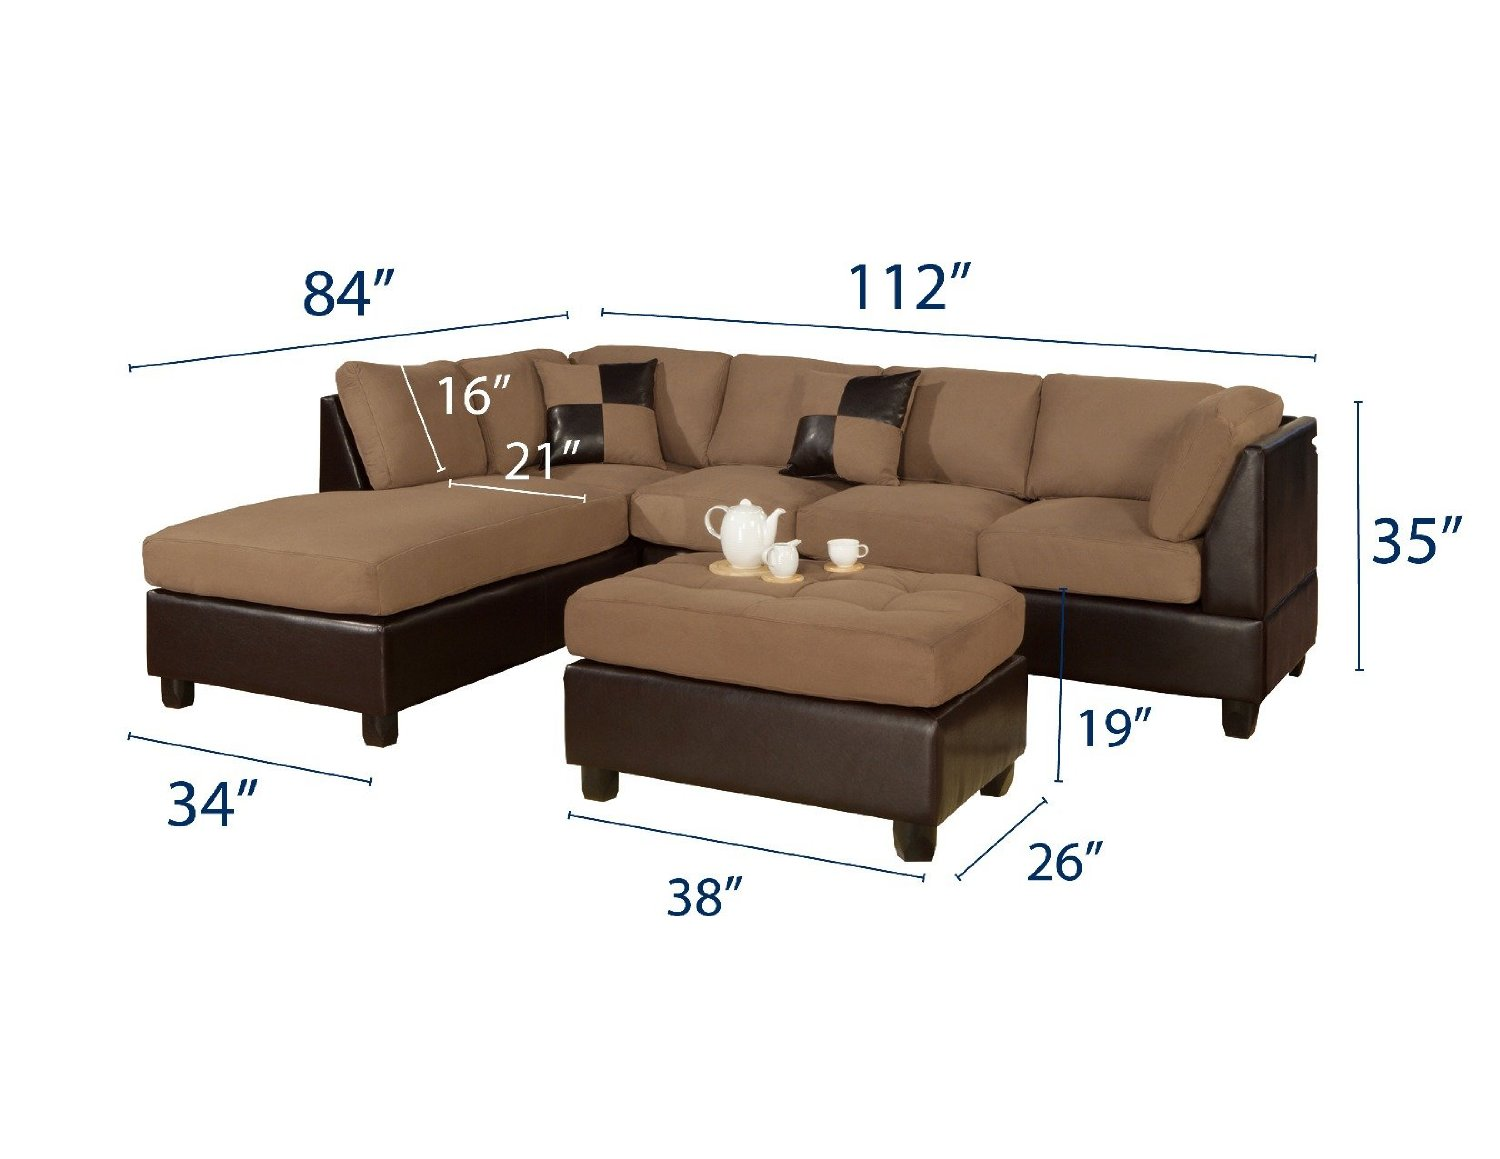 charming cheap sectional sofas in tan and dark brown for living room furniture ideas